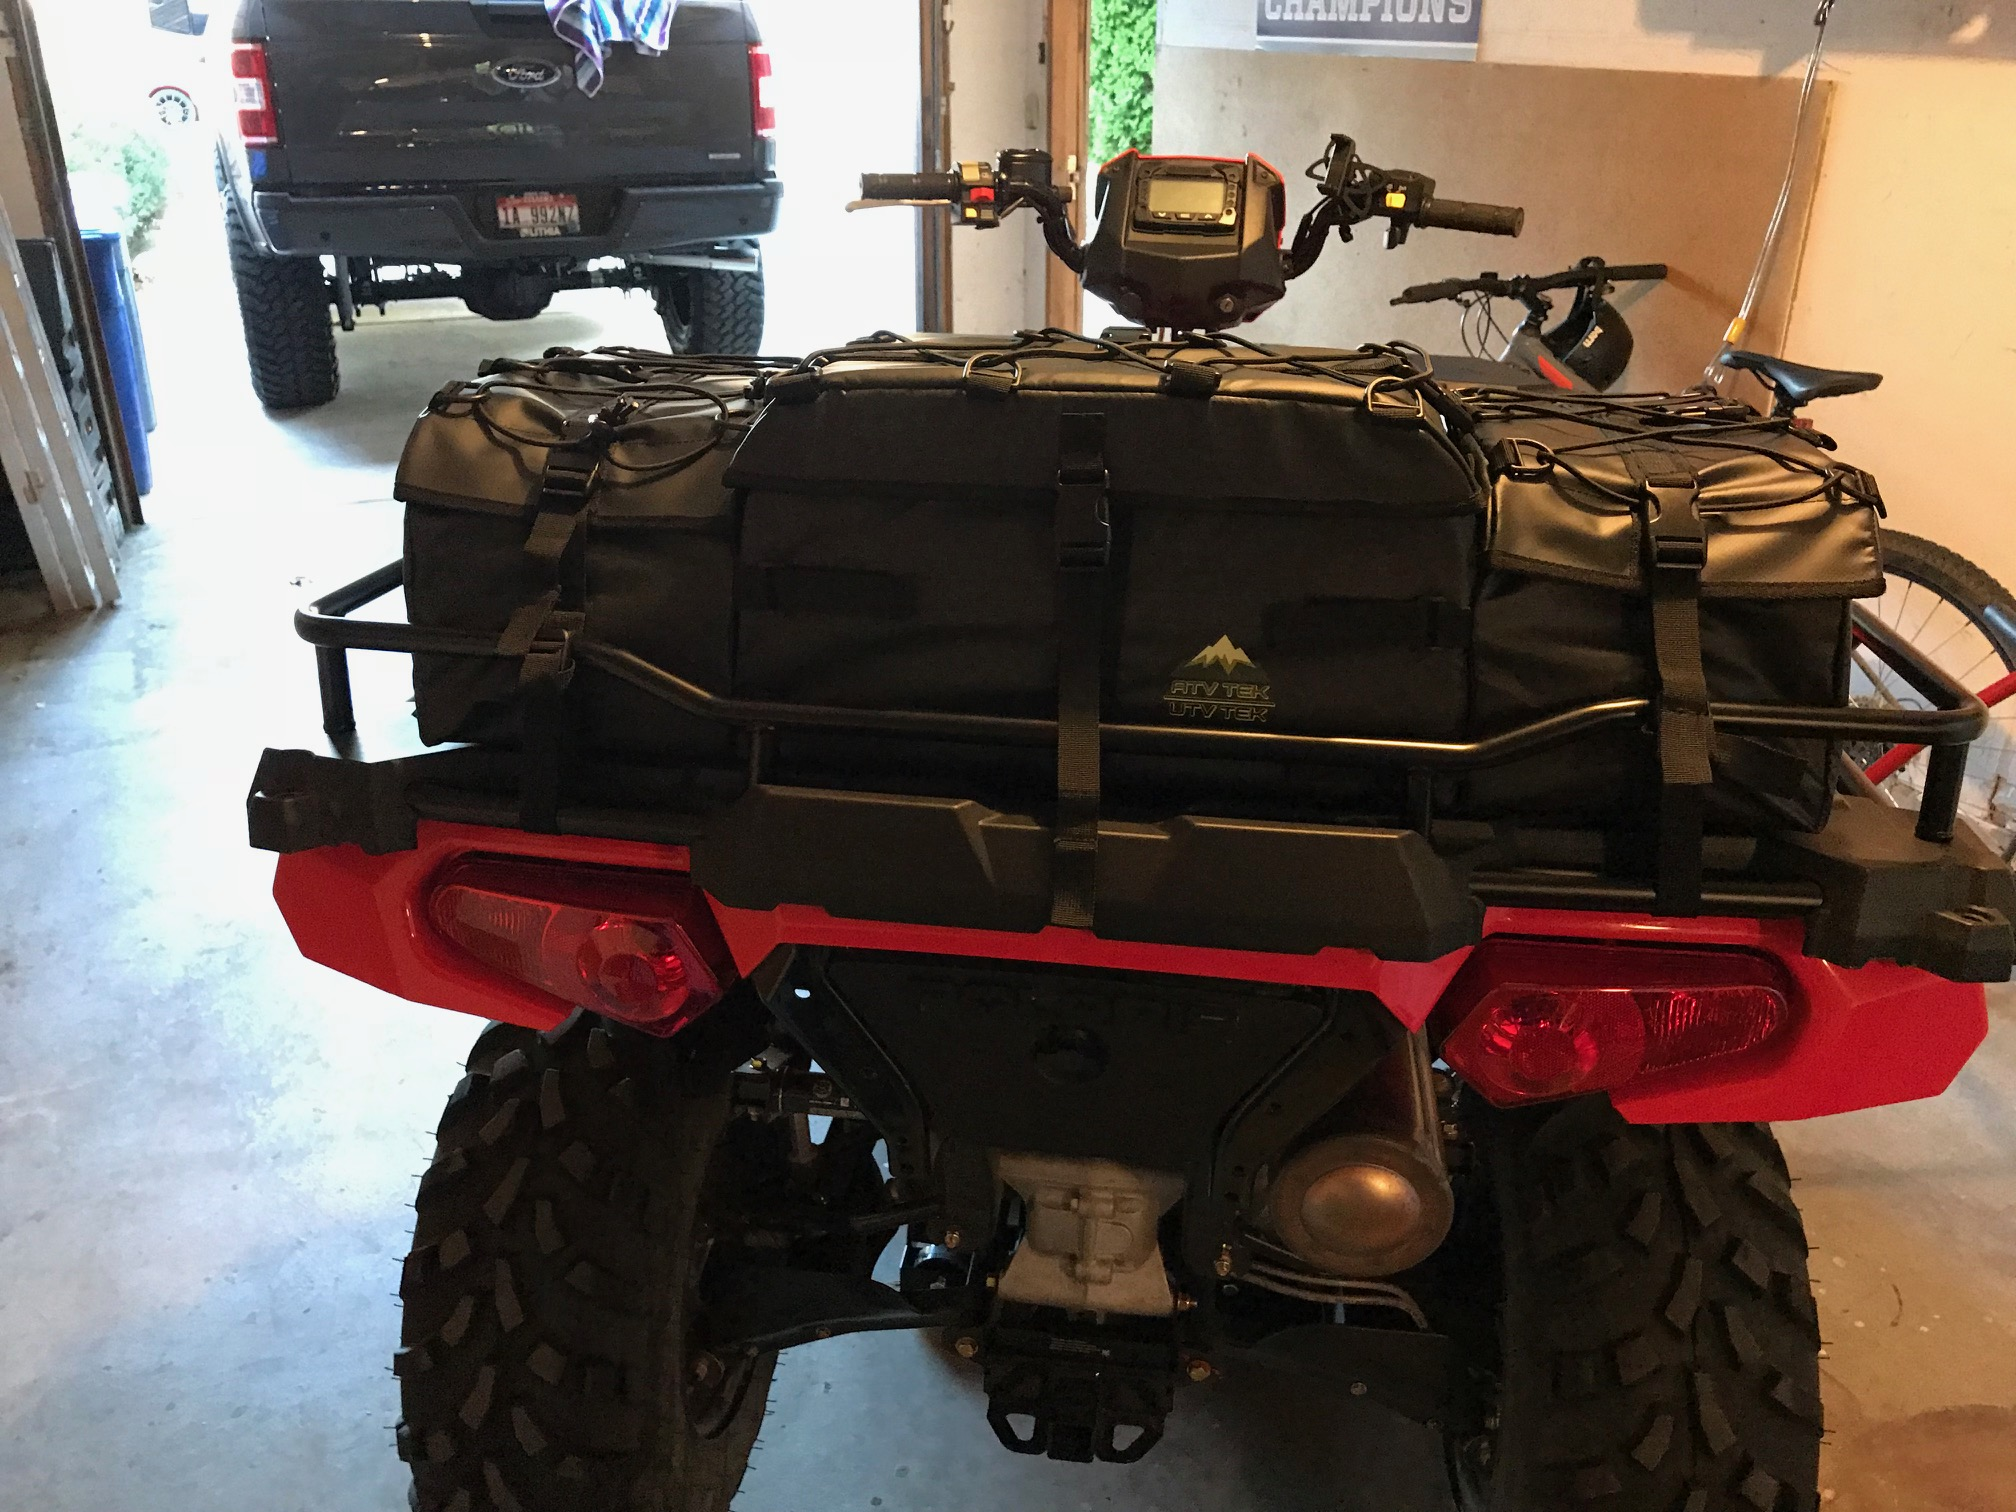 Sportsman 570 Must Have Accessories - Page 3